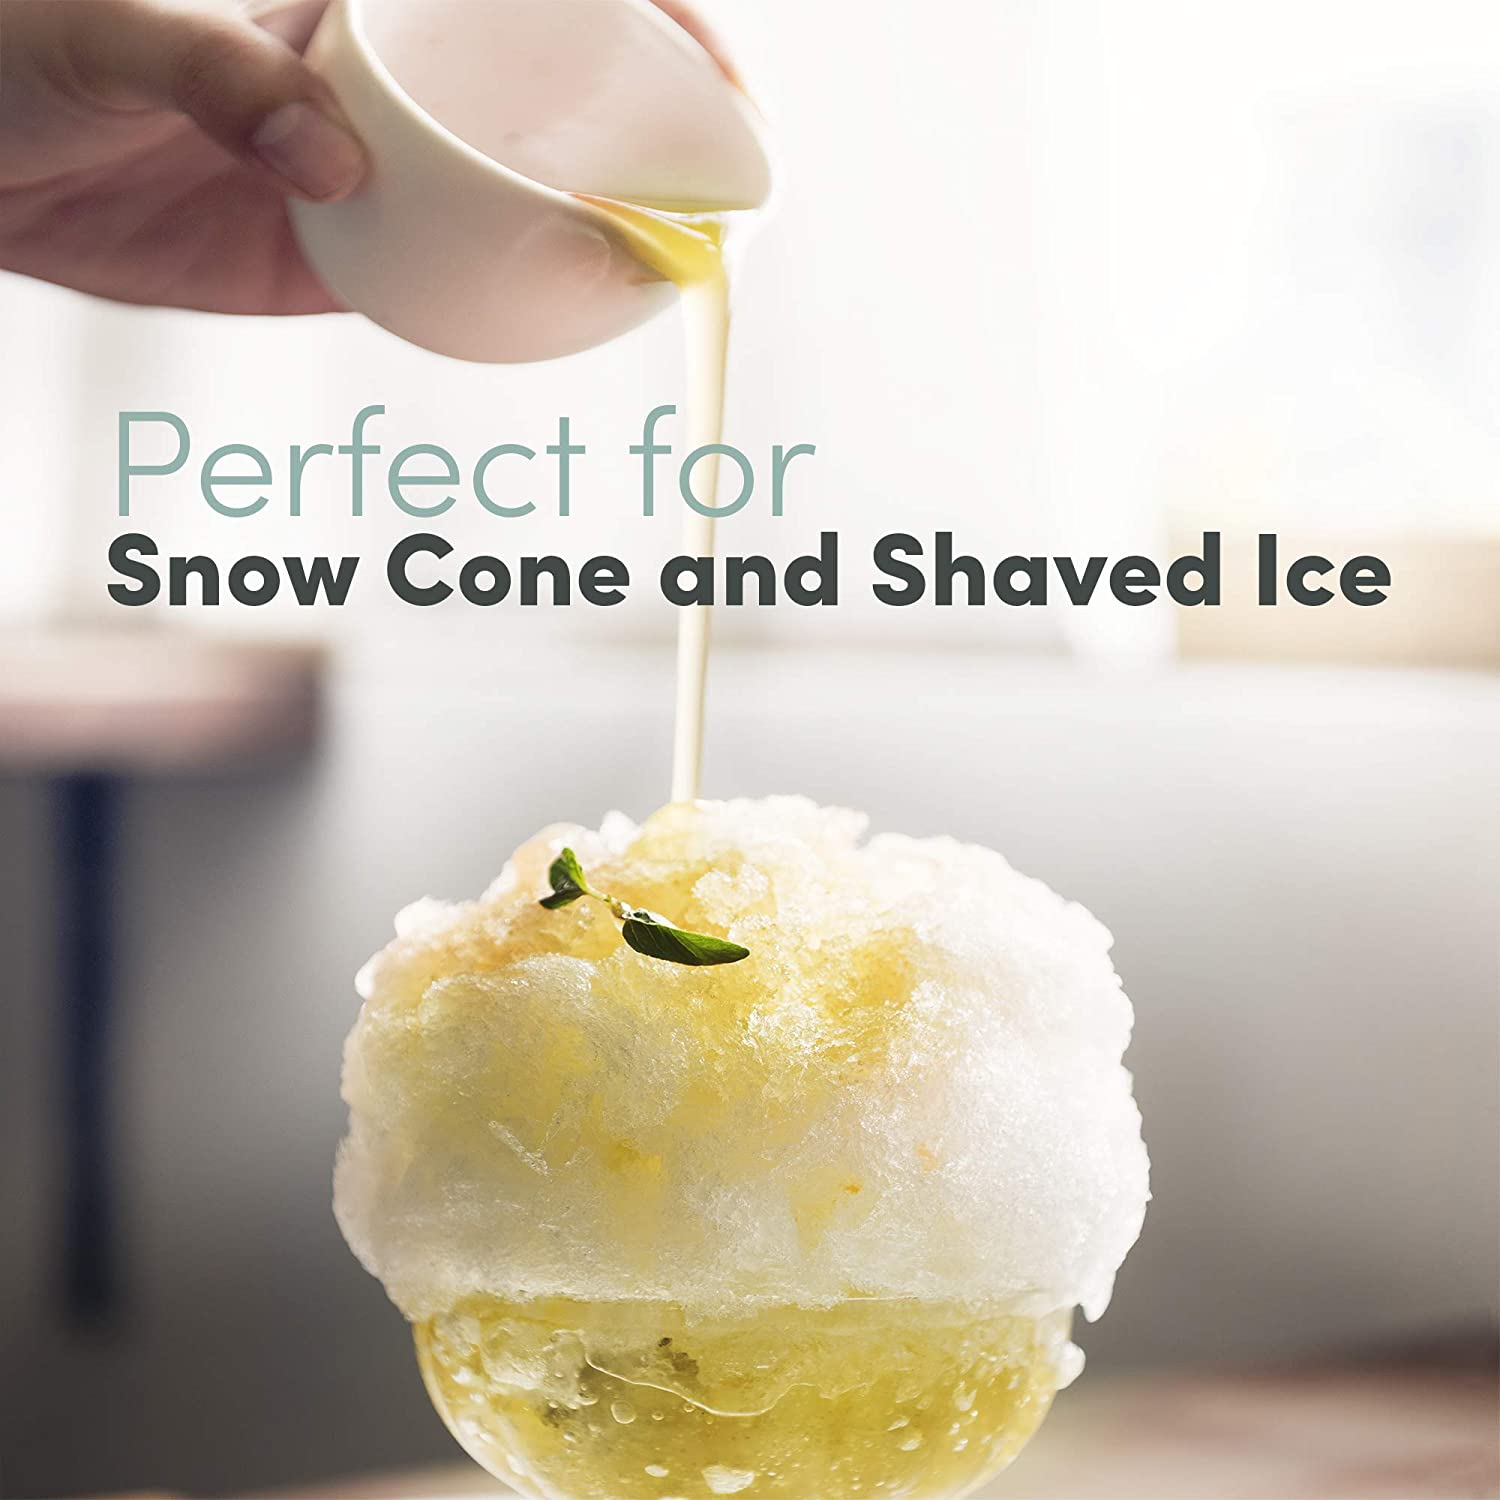 Blue Kid-Friendly Party Summer Treat Maker White Elite Gourmet EIC-629 Electric Countertop Snow Cone Hawaiian Shave Ice Machine